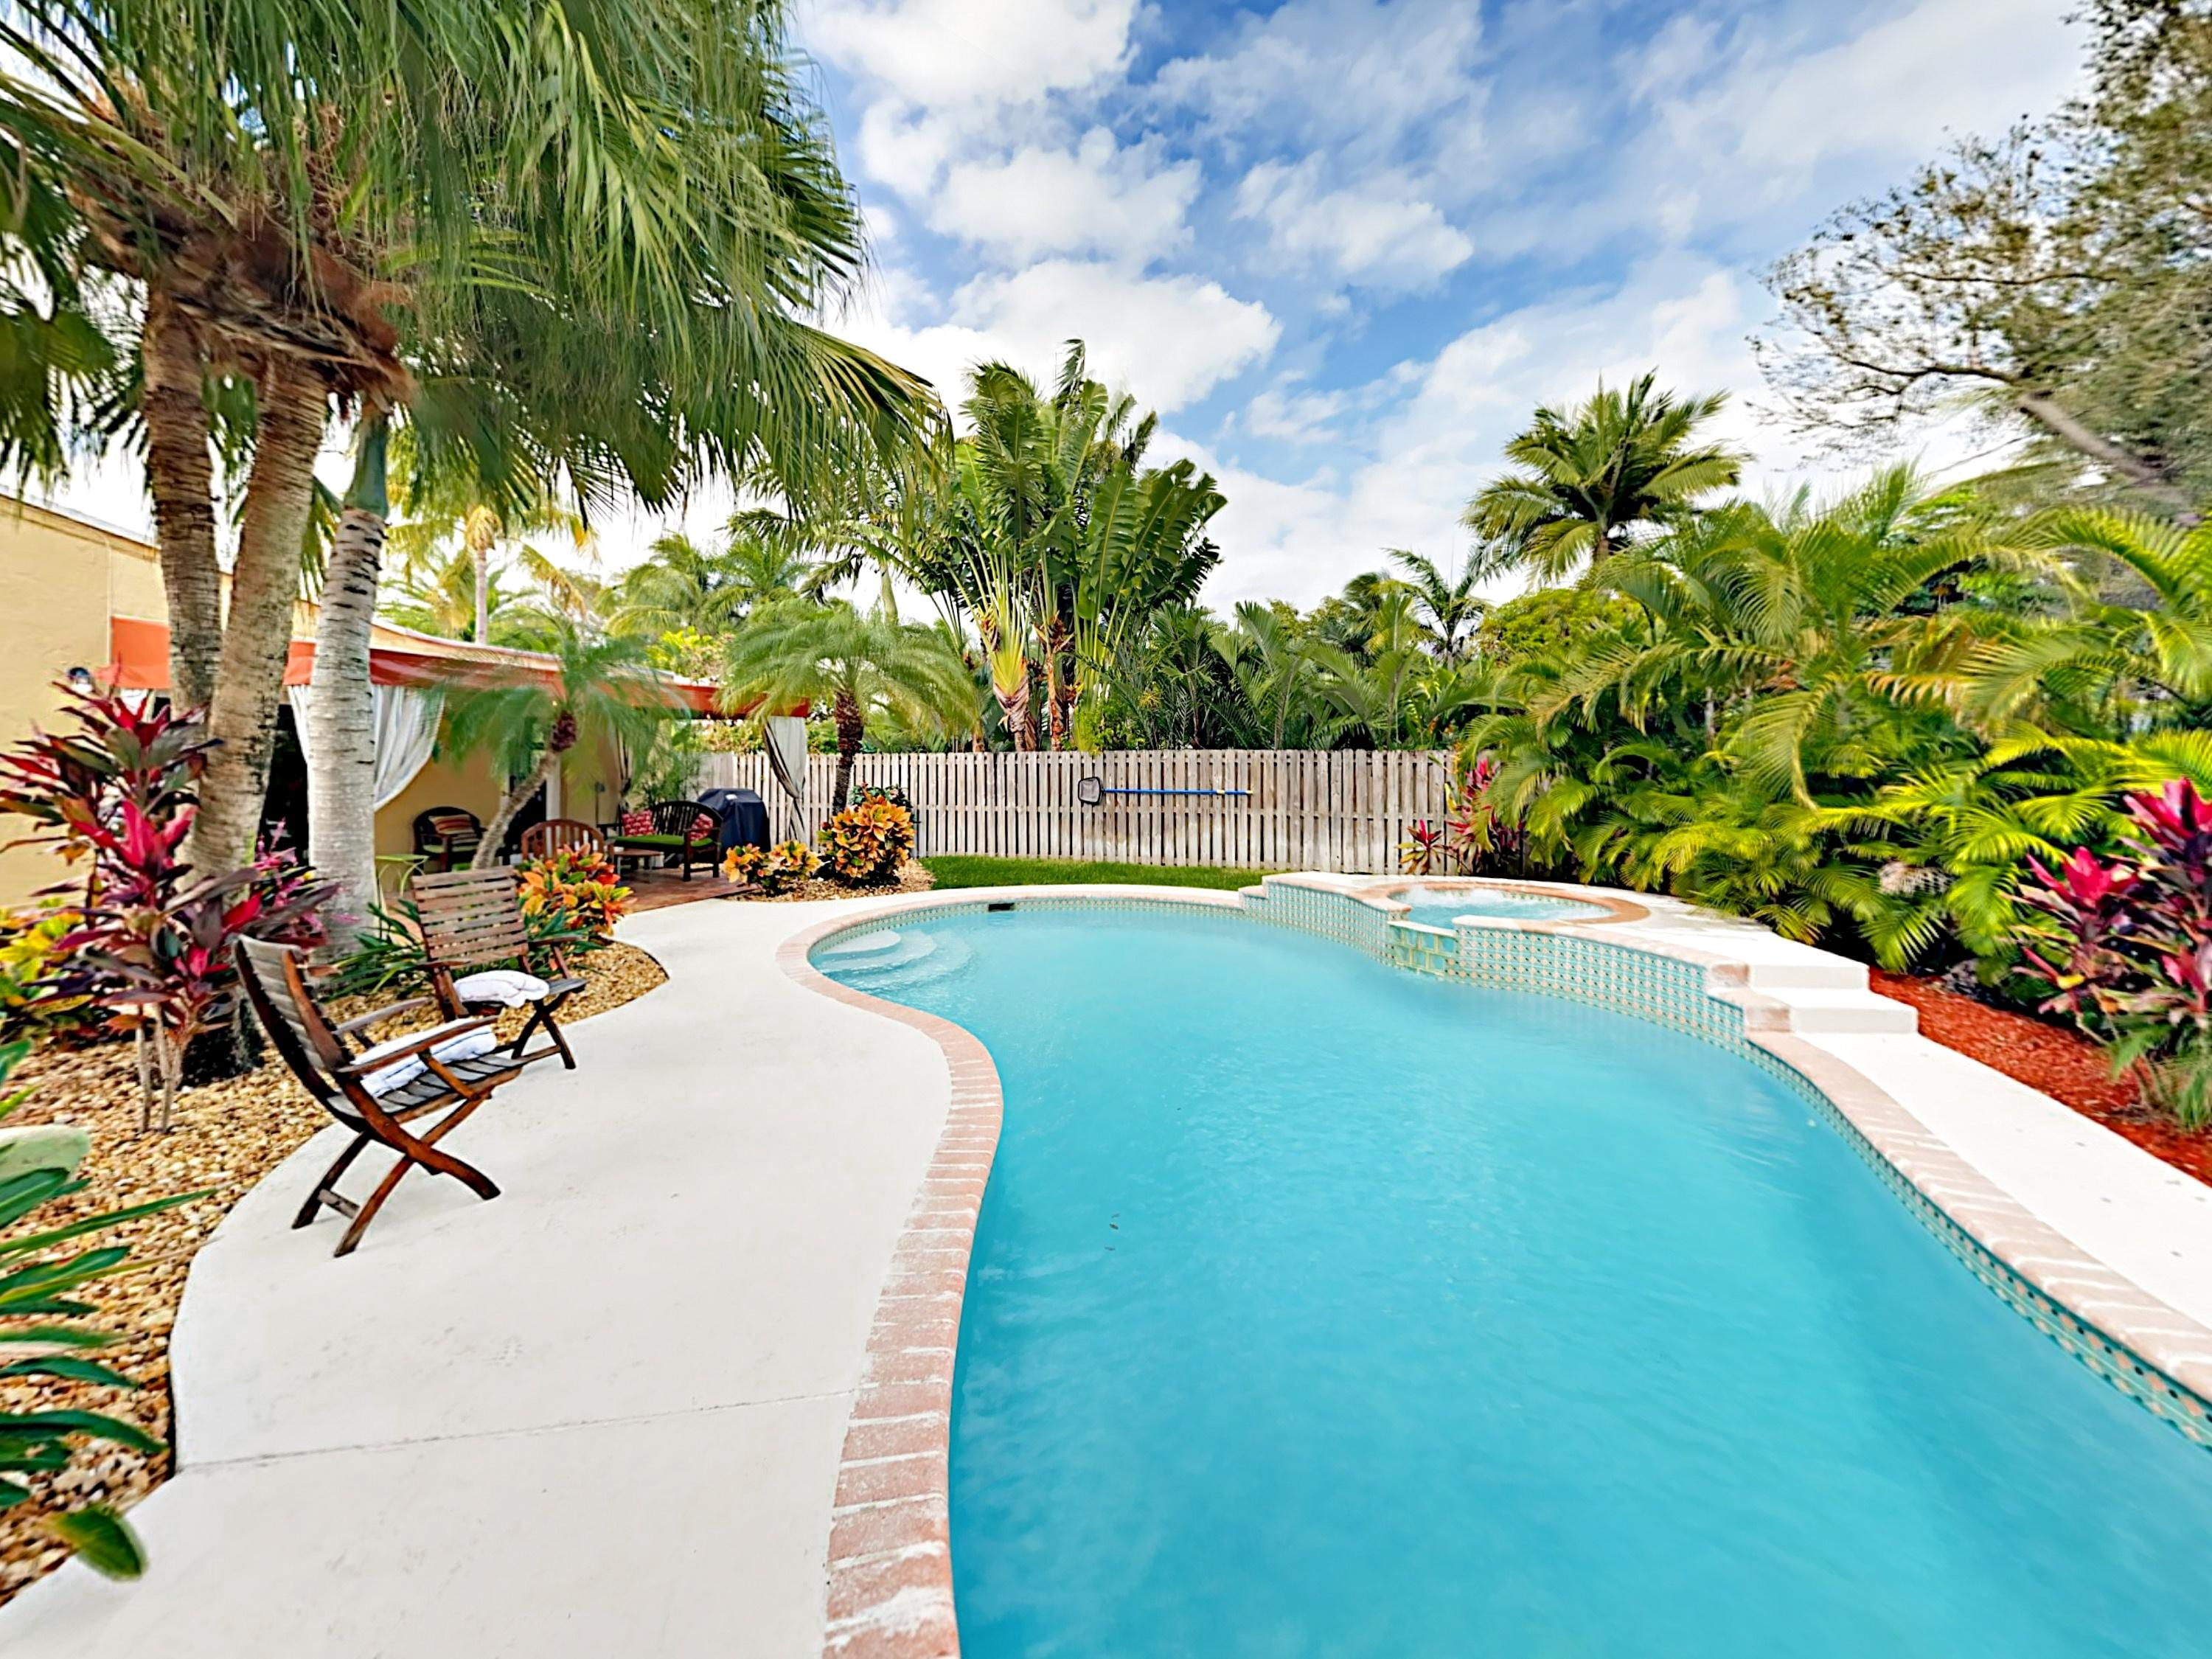 Welcome to Fort Lauderdale! Your tropical oasis is professionally managed by TurnKey Vacation Rentals.